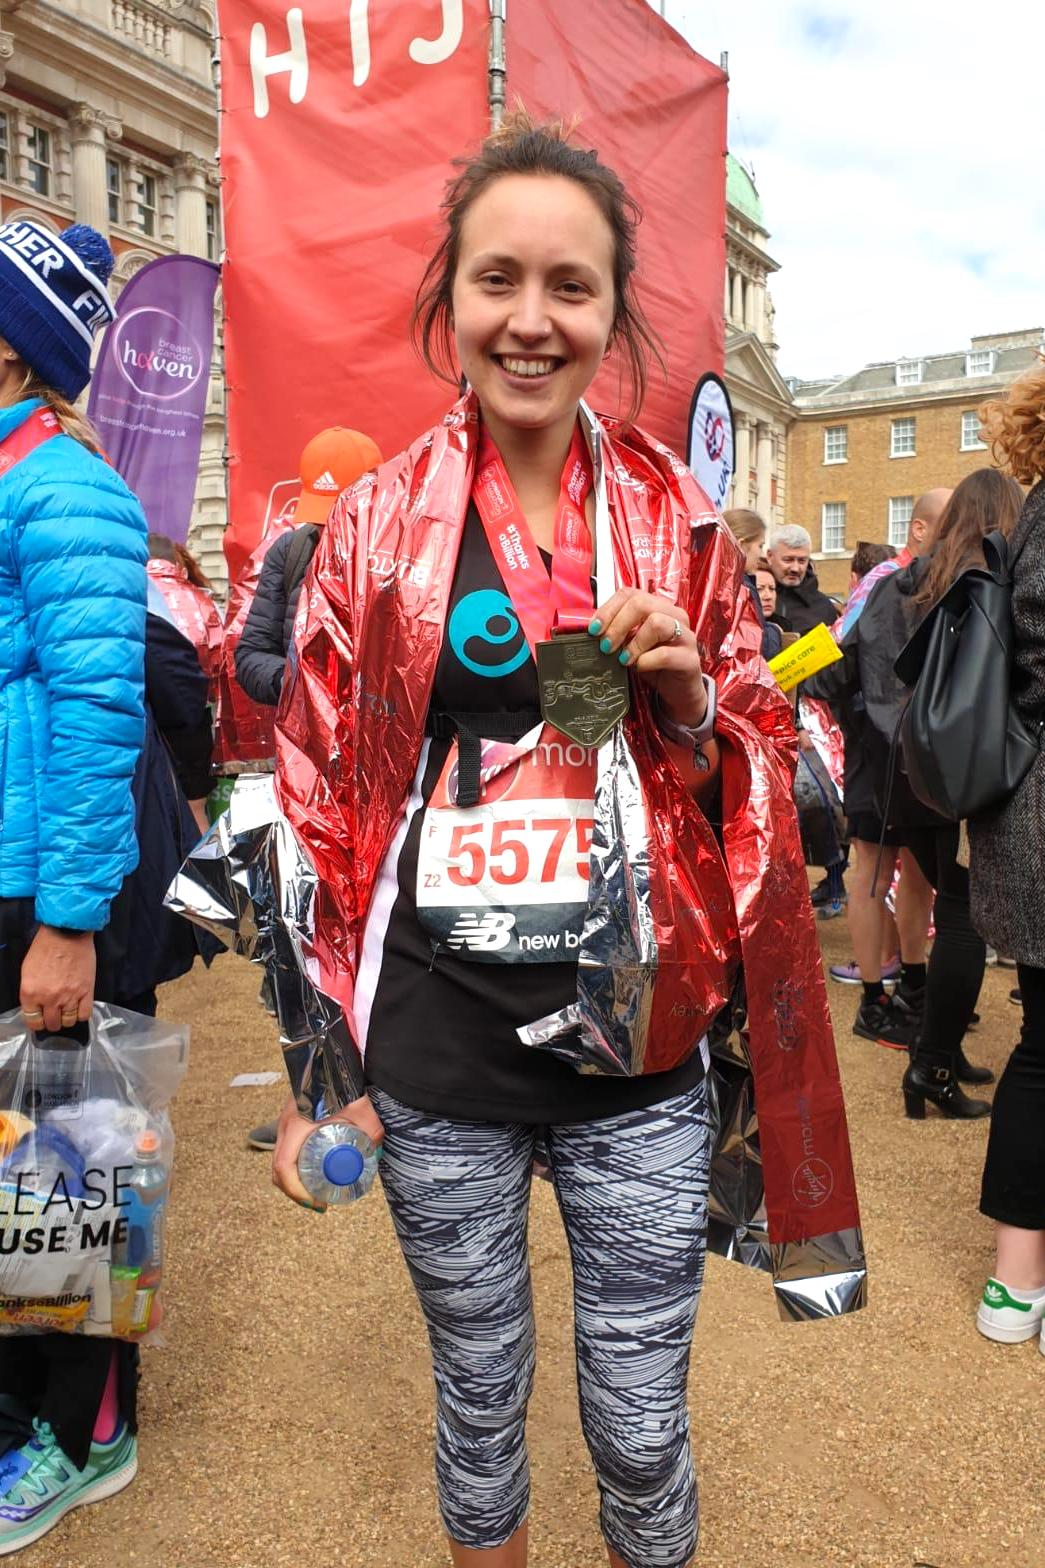 Hannah ran a marathon to raise money for Joanna Project